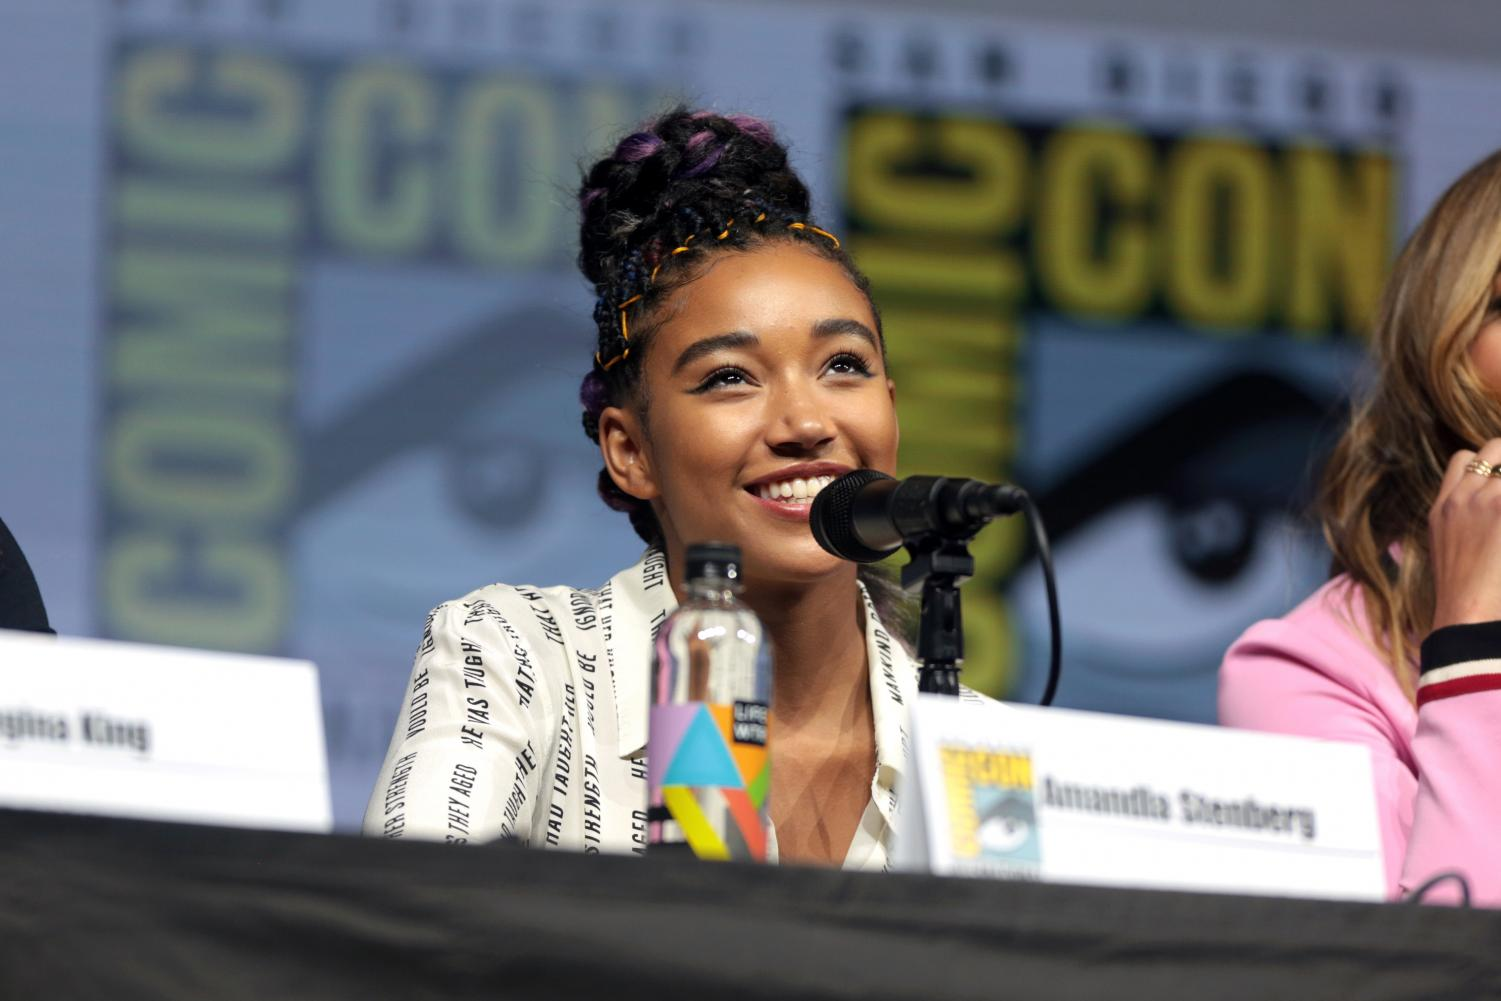 "Amandla Stenberg, playing the role of Starr Carter in the 2018 film The Hate U Give, speaks at the San Diego Comic Con for Entertainment Weekly's ""Women Who Kick Ass.""  ""Every single day was just so beautiful, I was really moved by how everyone that was a part of this project really showed up with their intentions in the right place and showed up because they wanted to tell the truth and speak for those who can't,"" Stenberg said."